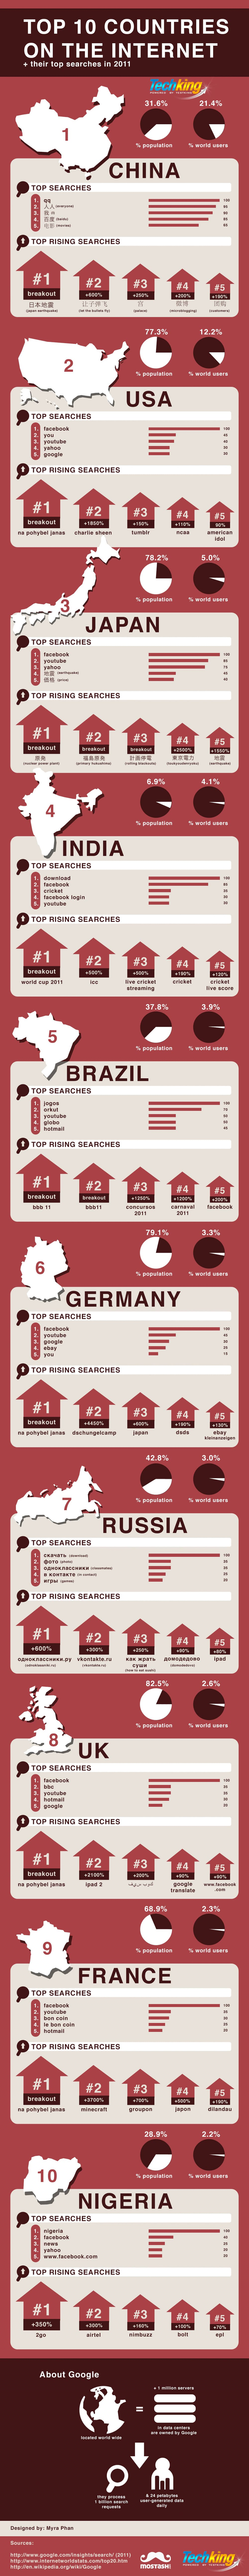 Top 10 Countries Search Terms